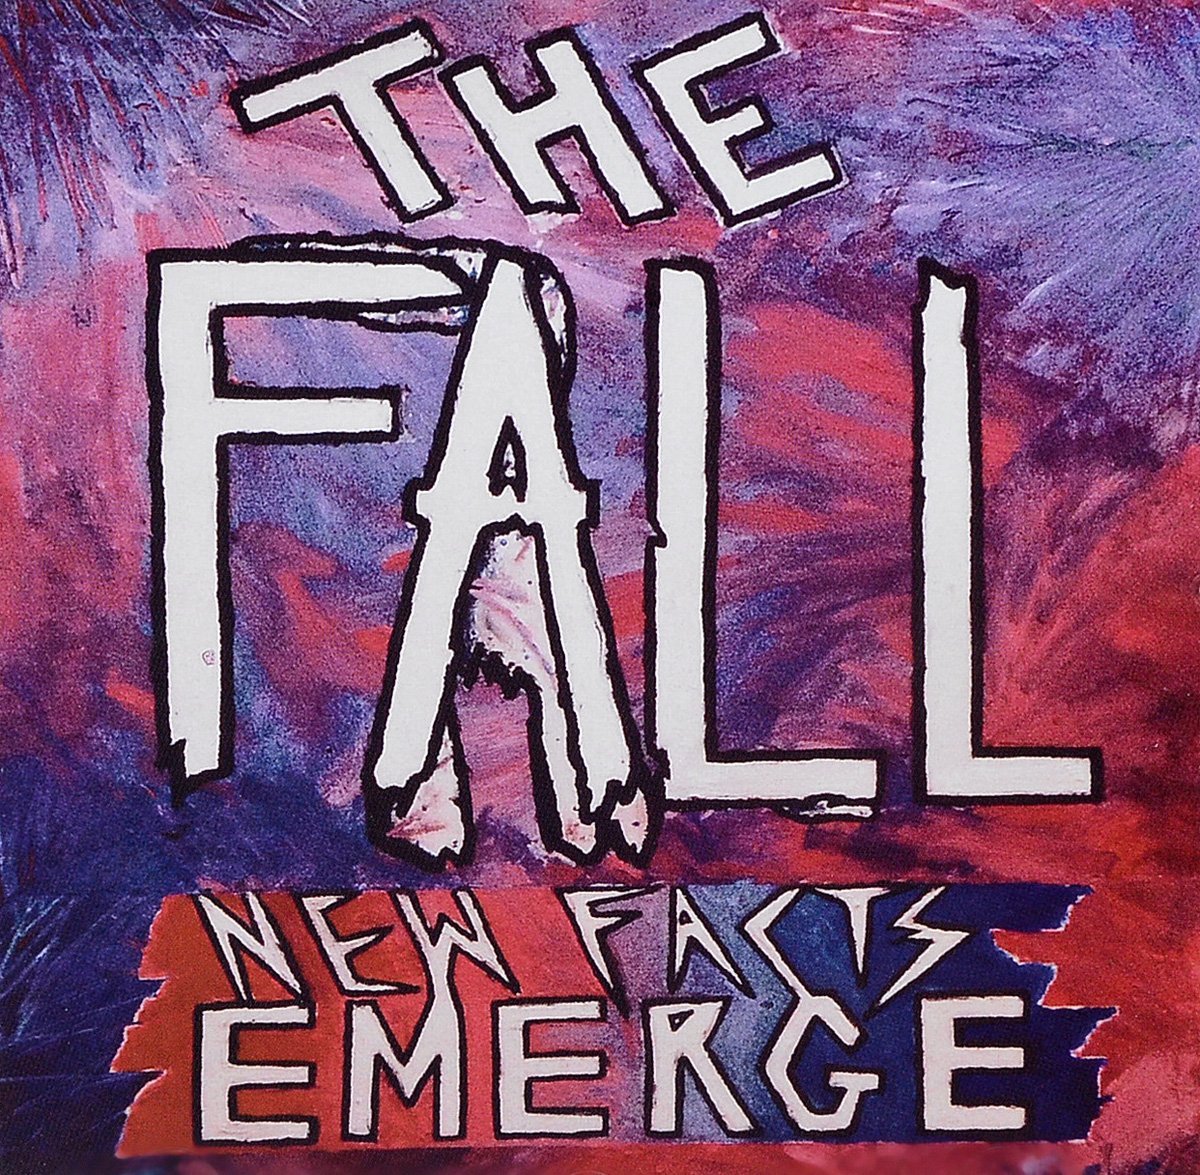 The Fall Fall. New Facts Emerge